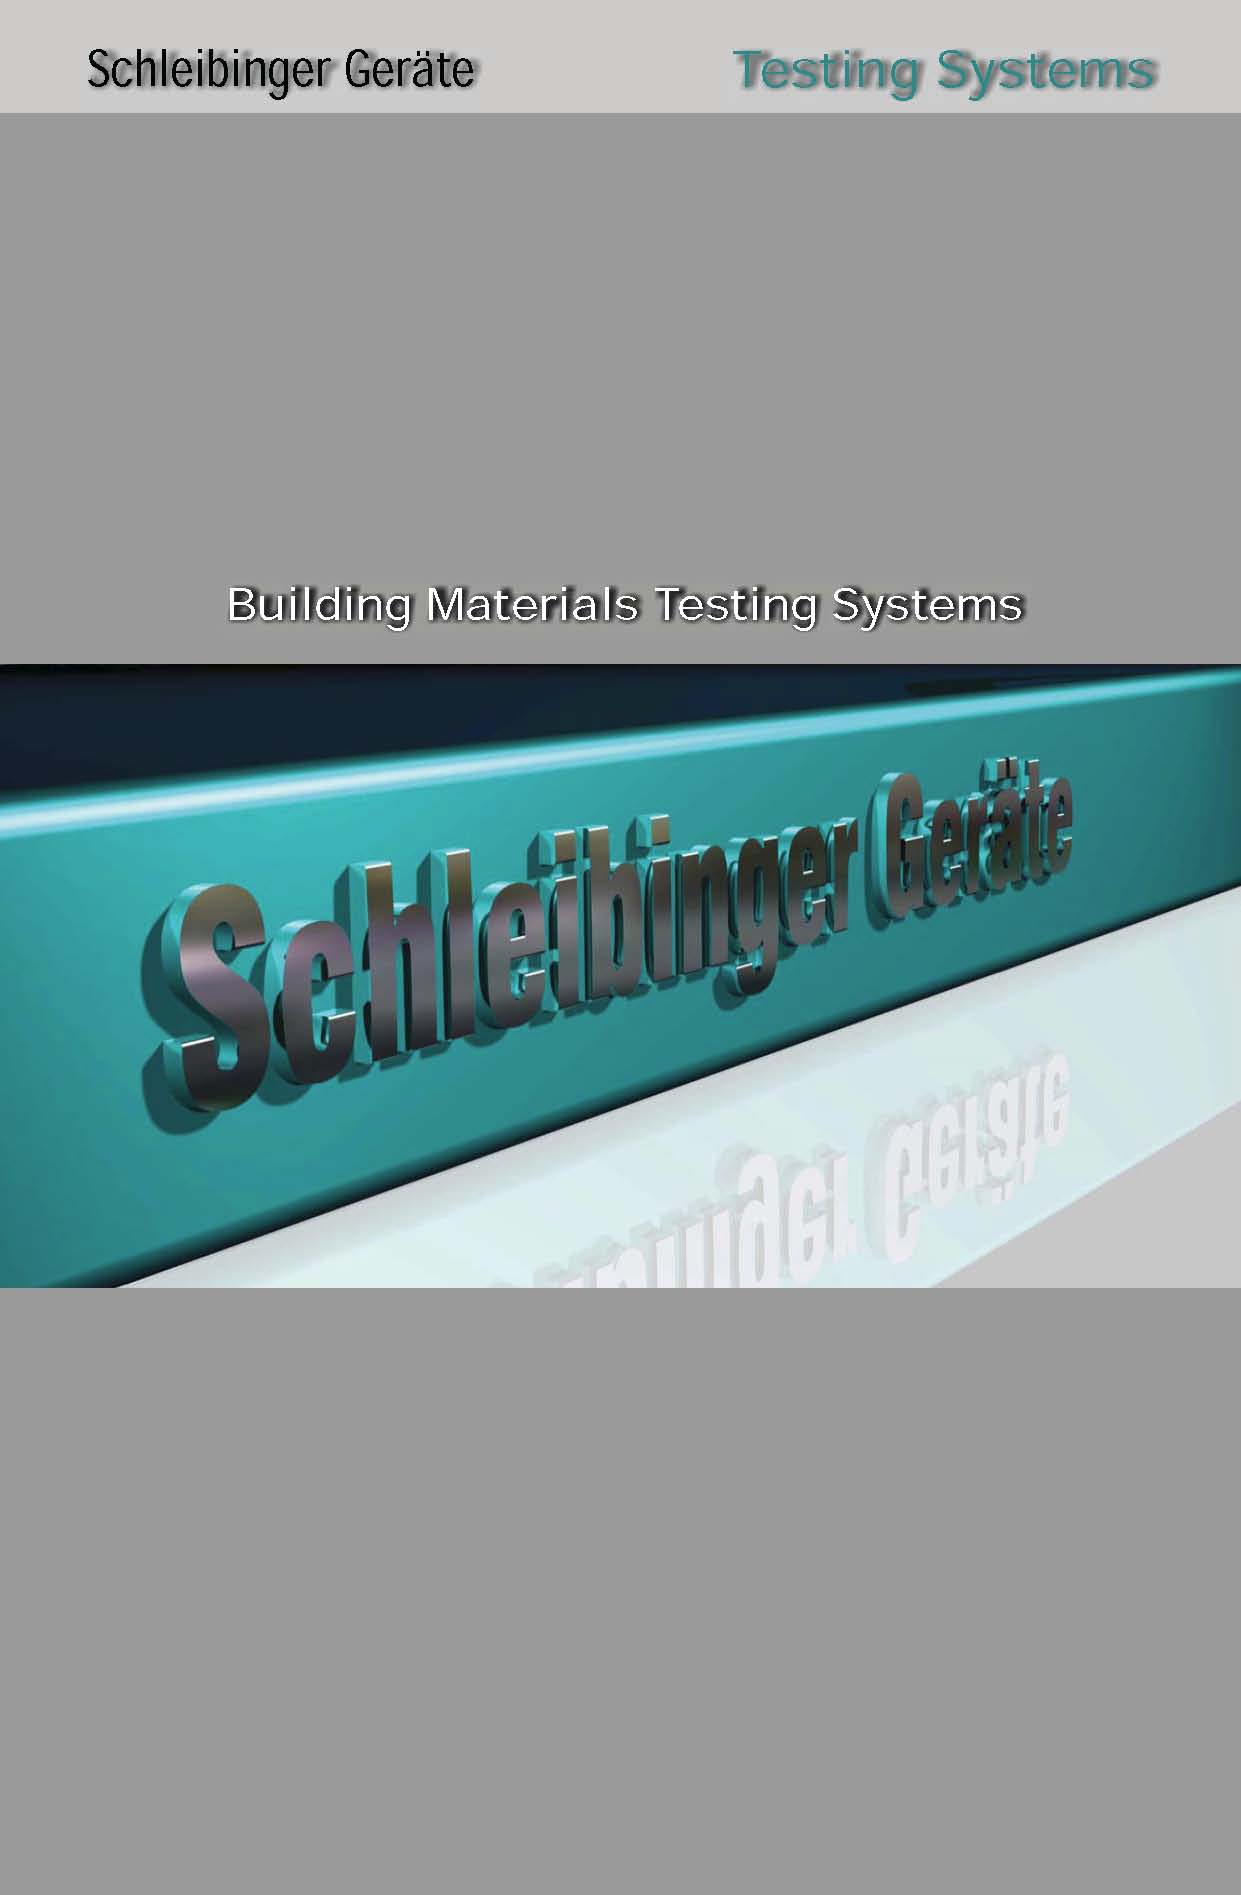 Schleibinger Testing Systems Catalogue